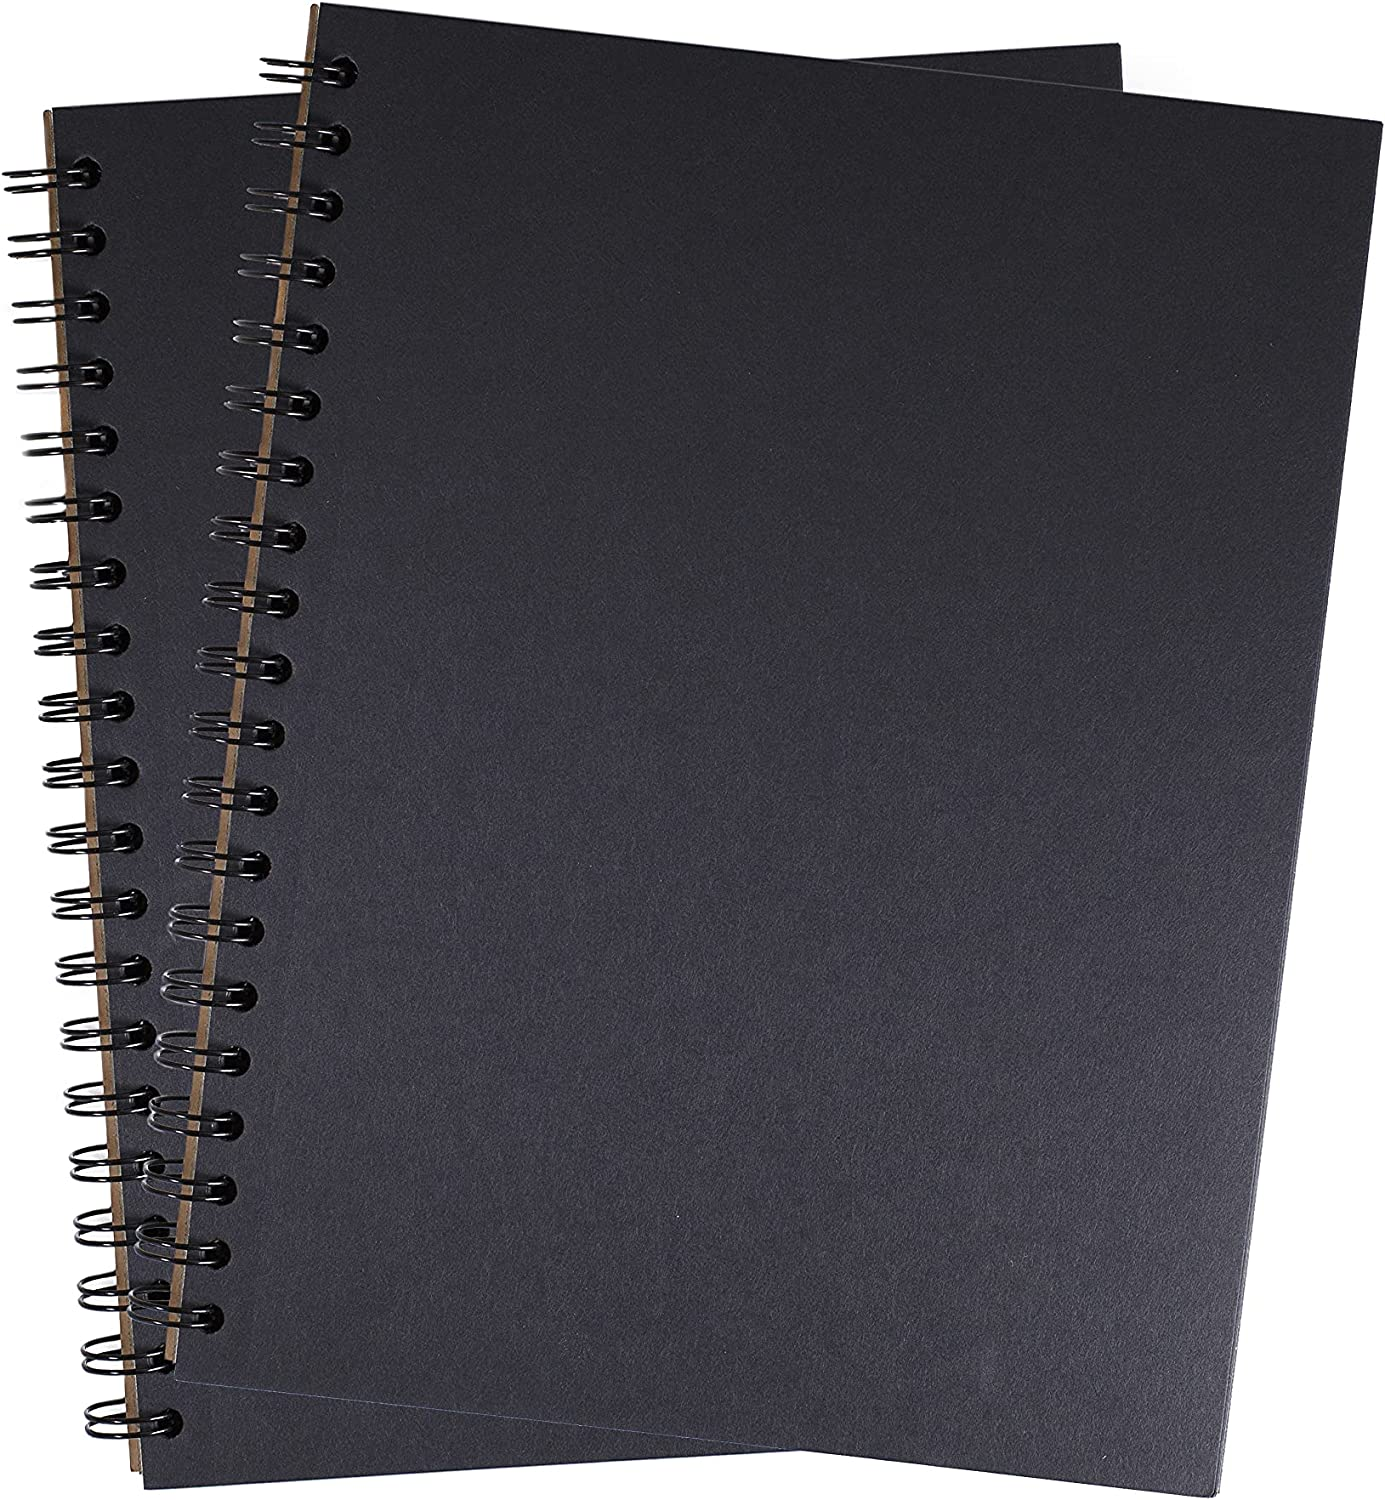 Unruled Blackout Notebook 8 x 10.5 Spiral Inches: Bound Pa Black Max 86% OFF Max 50% OFF